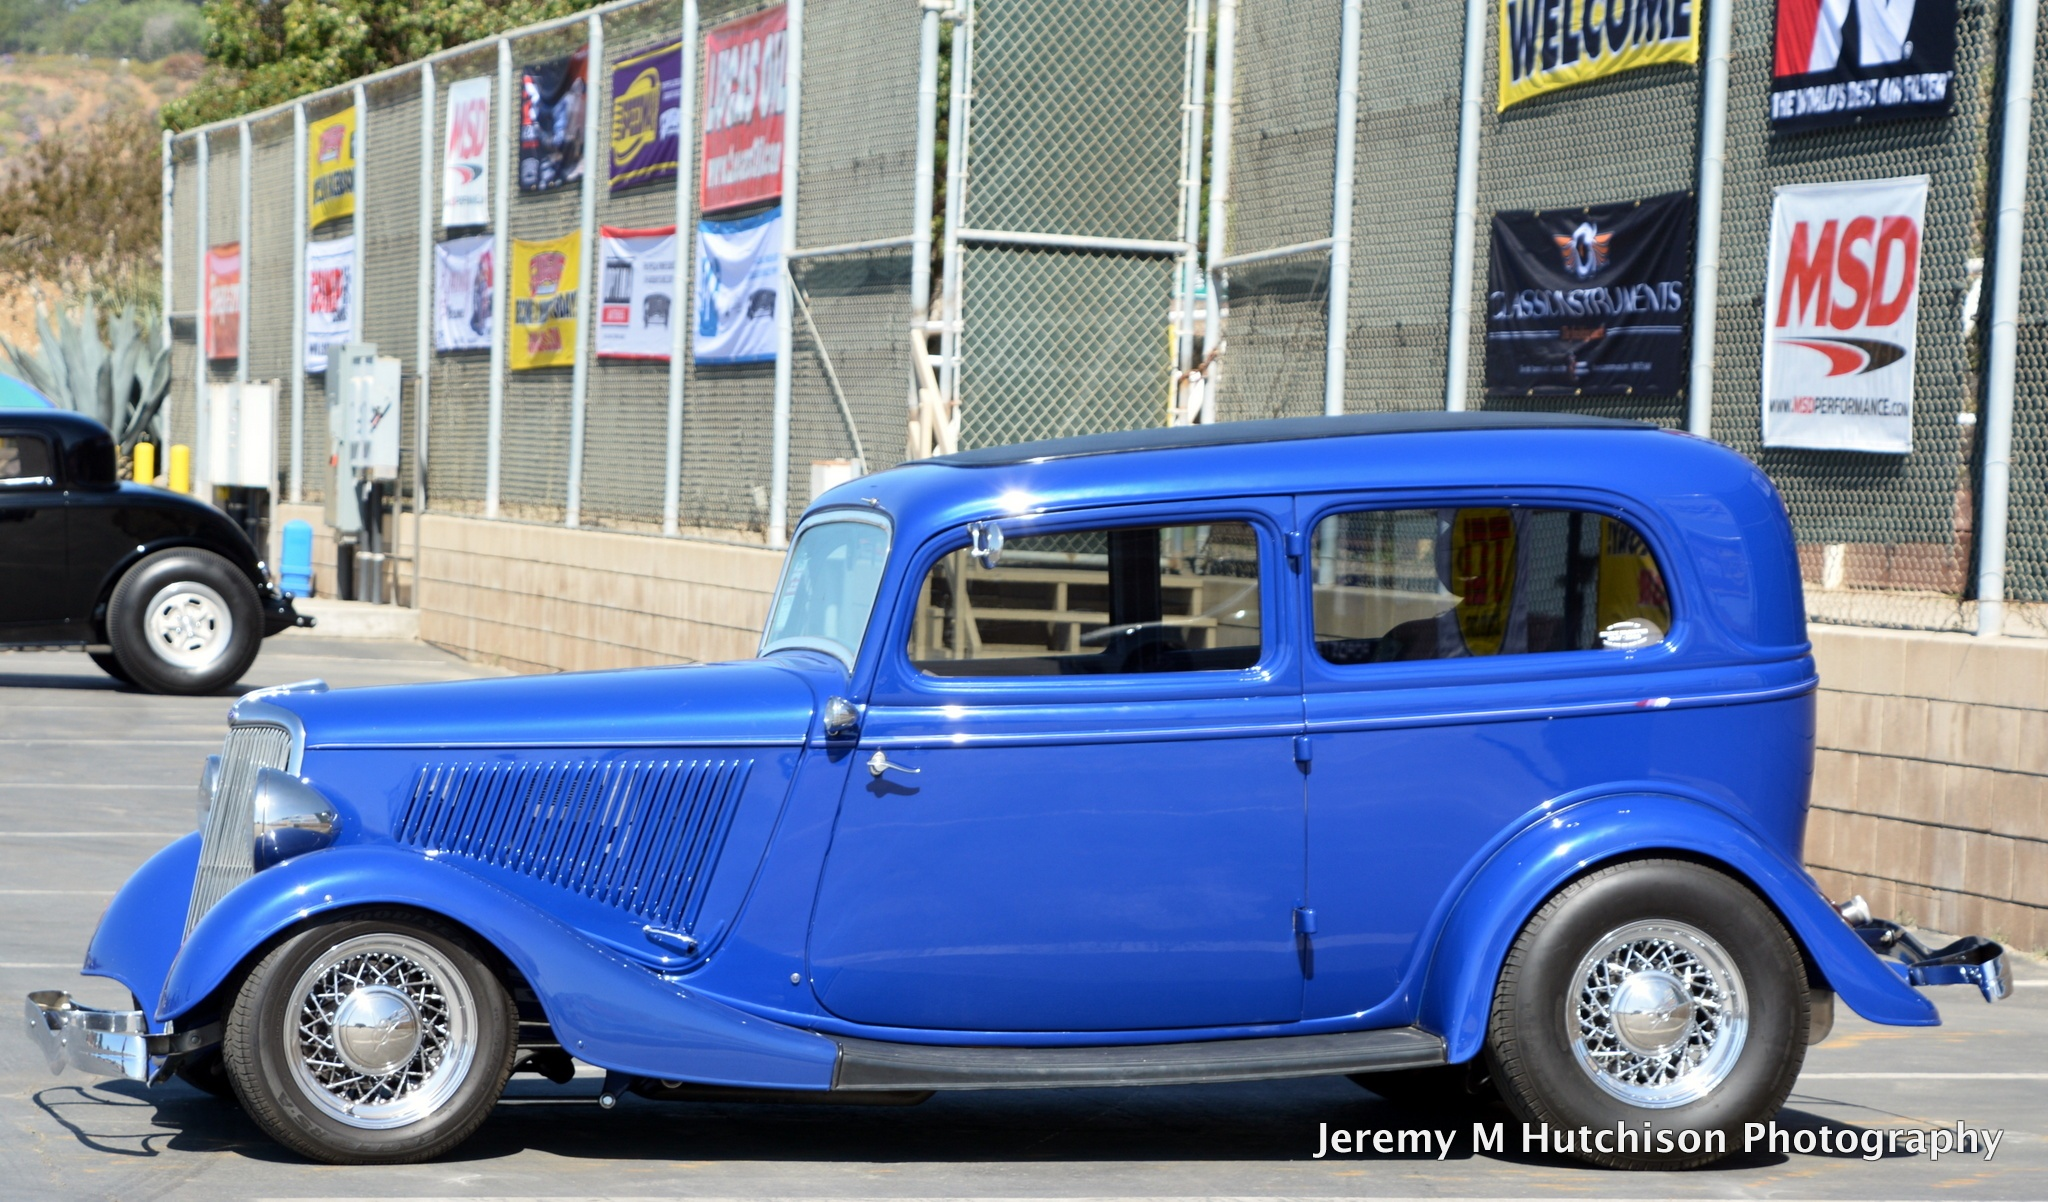 Goodguys 16th Meguiar's Del Mar Nationals presented by American Racing Wheels by Jeremy M Hutchison